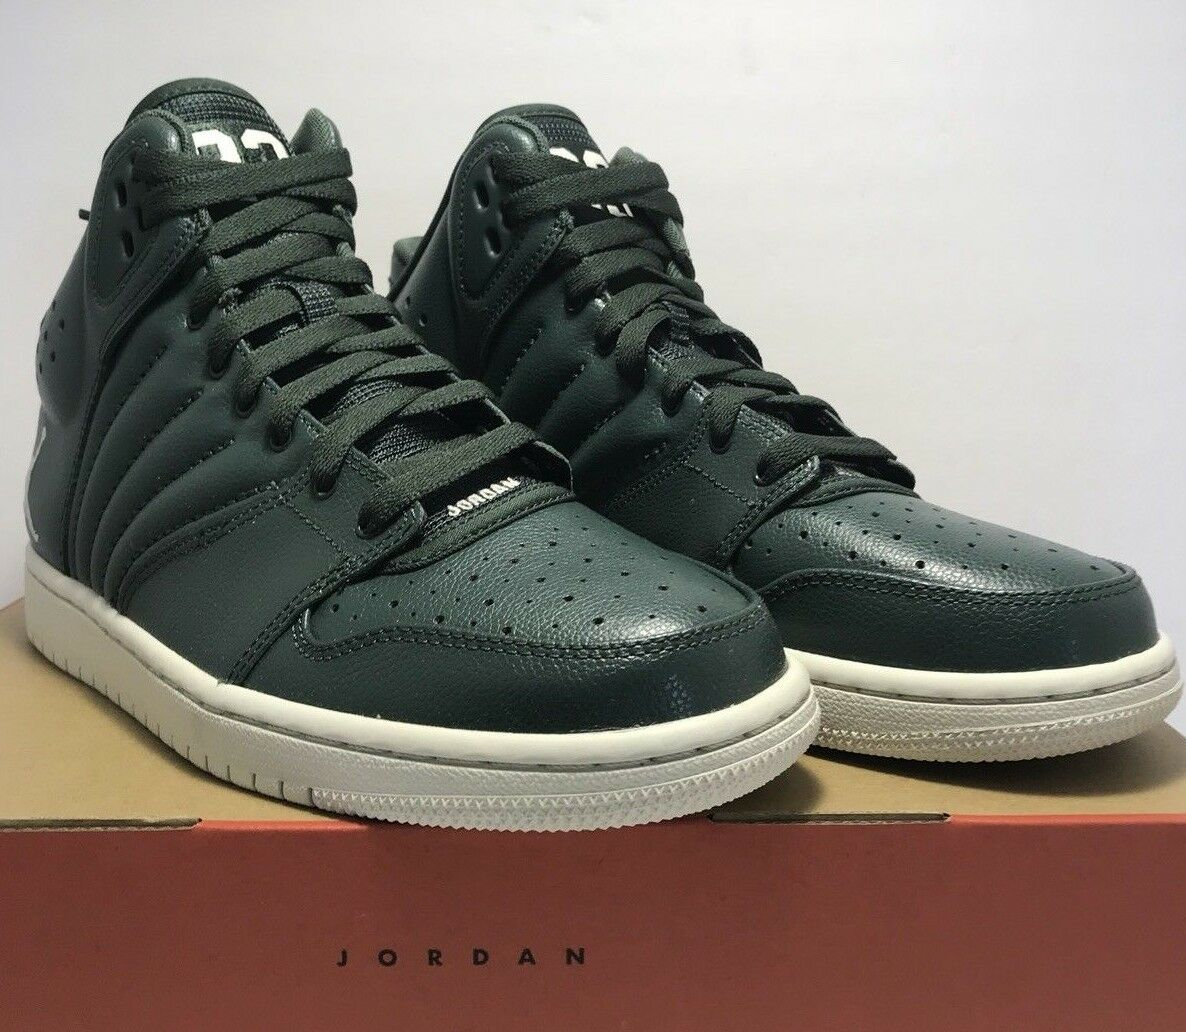 8d0dcfe2b72 Nike Air Jordan 1 Mens Size 8.5 Flight 4 Grove Green Basketball shoes